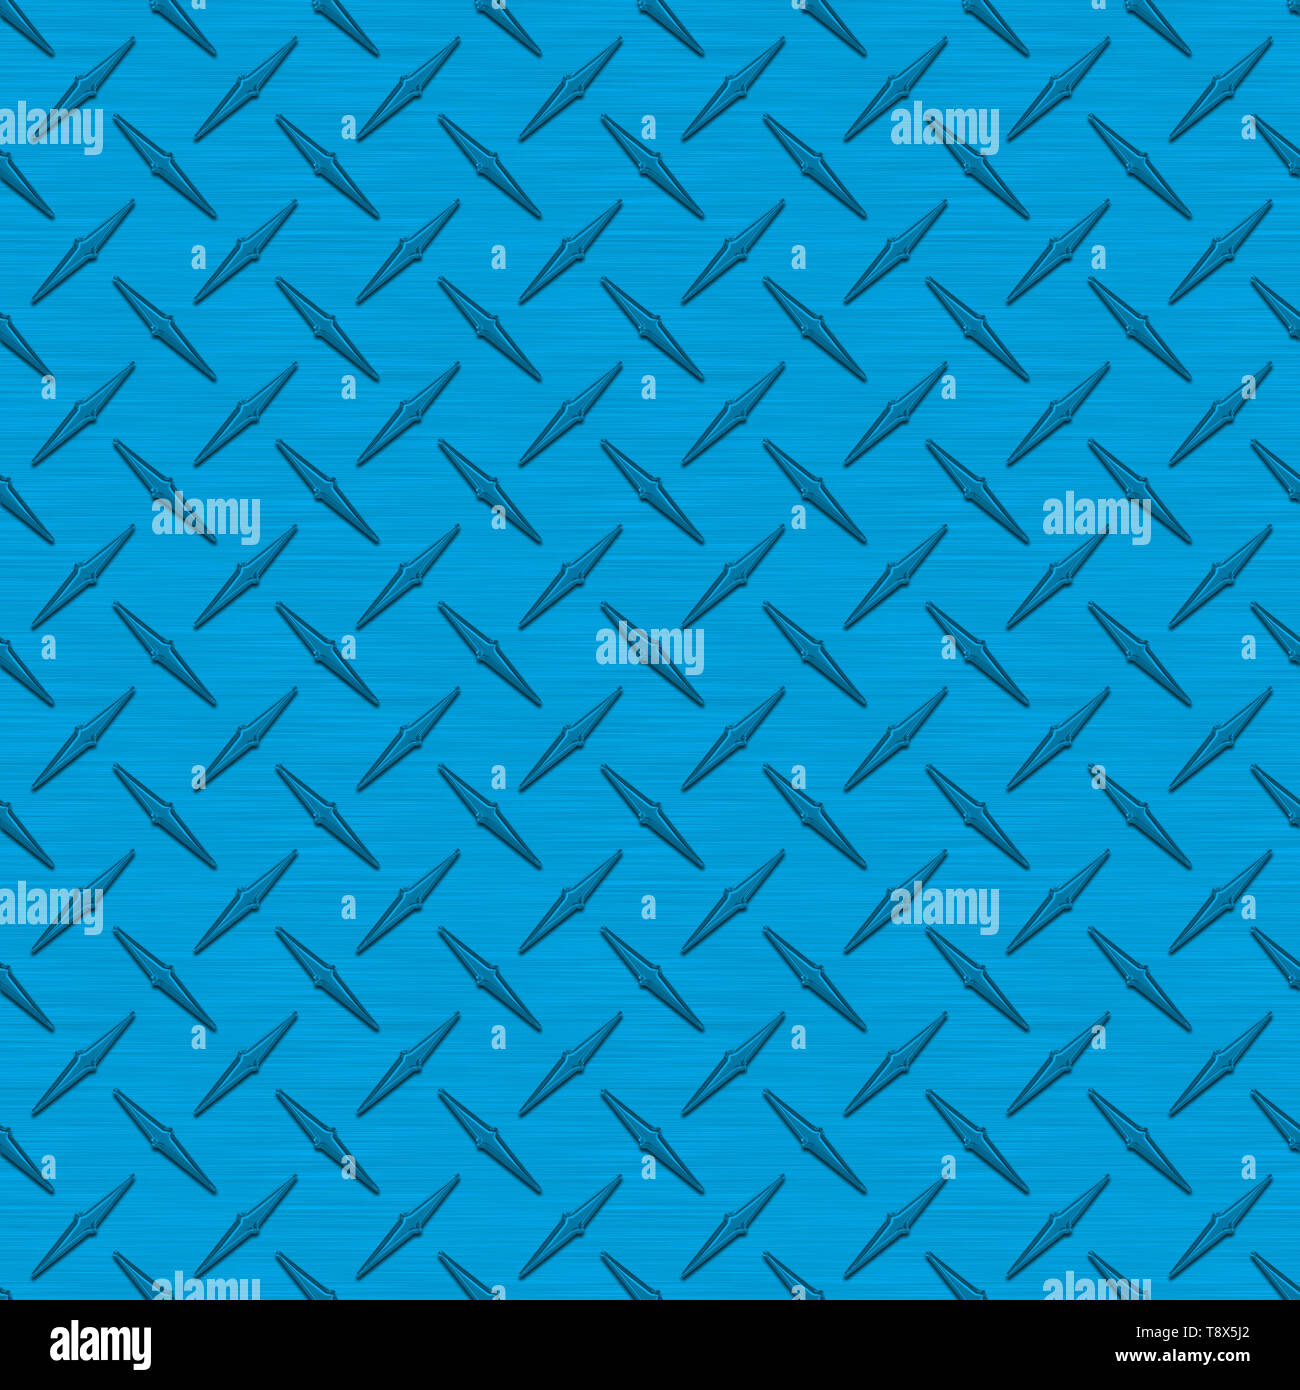 Bright Blue Diamond Plate Metal Seamless Texture Tile - Stock Image